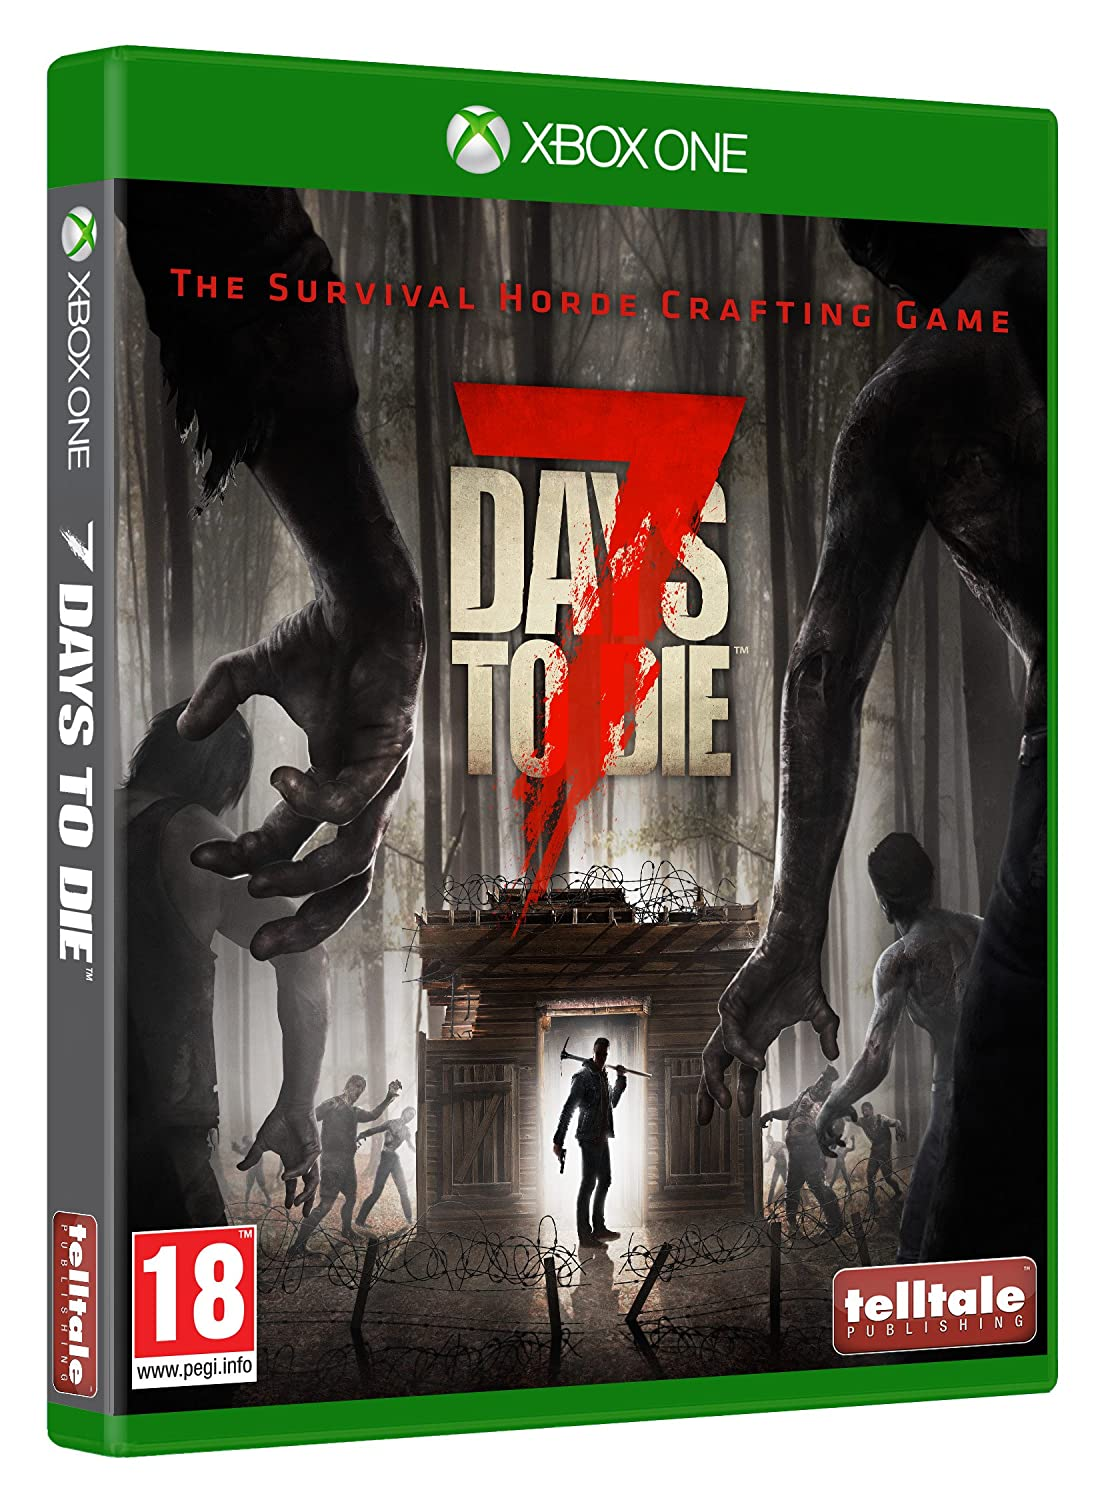 Amazon.com: 7 Days to Die (Xbox One) by Telltale: Video Games